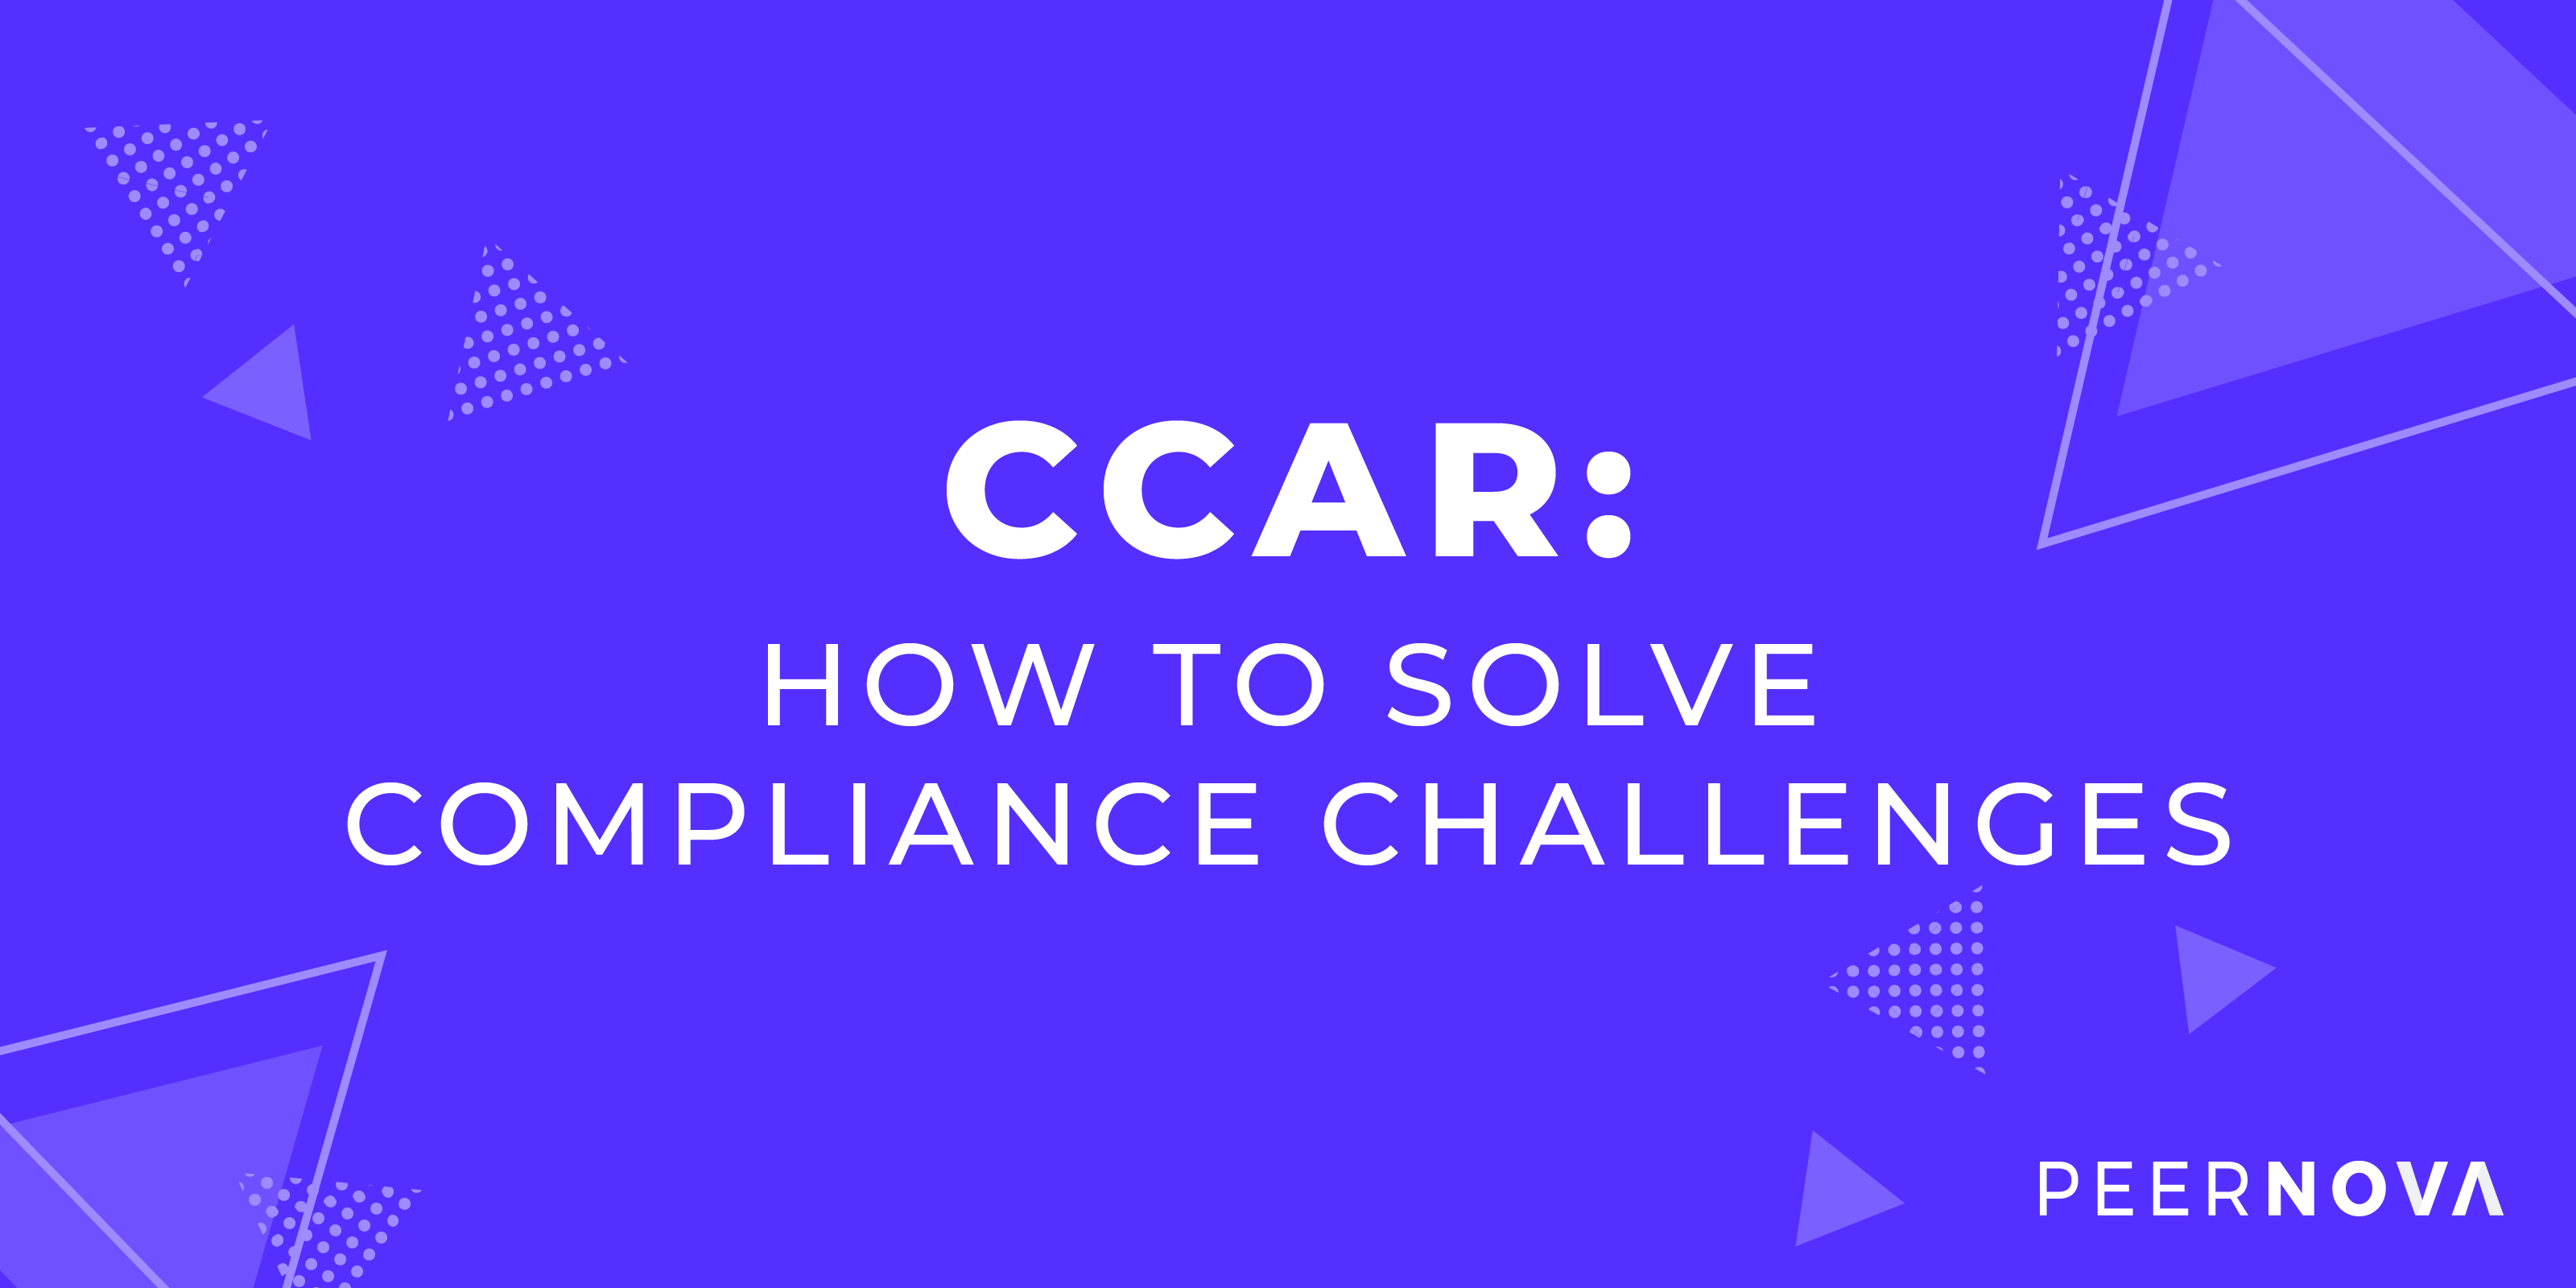 CCAR: How to Solve Compliance Challenges